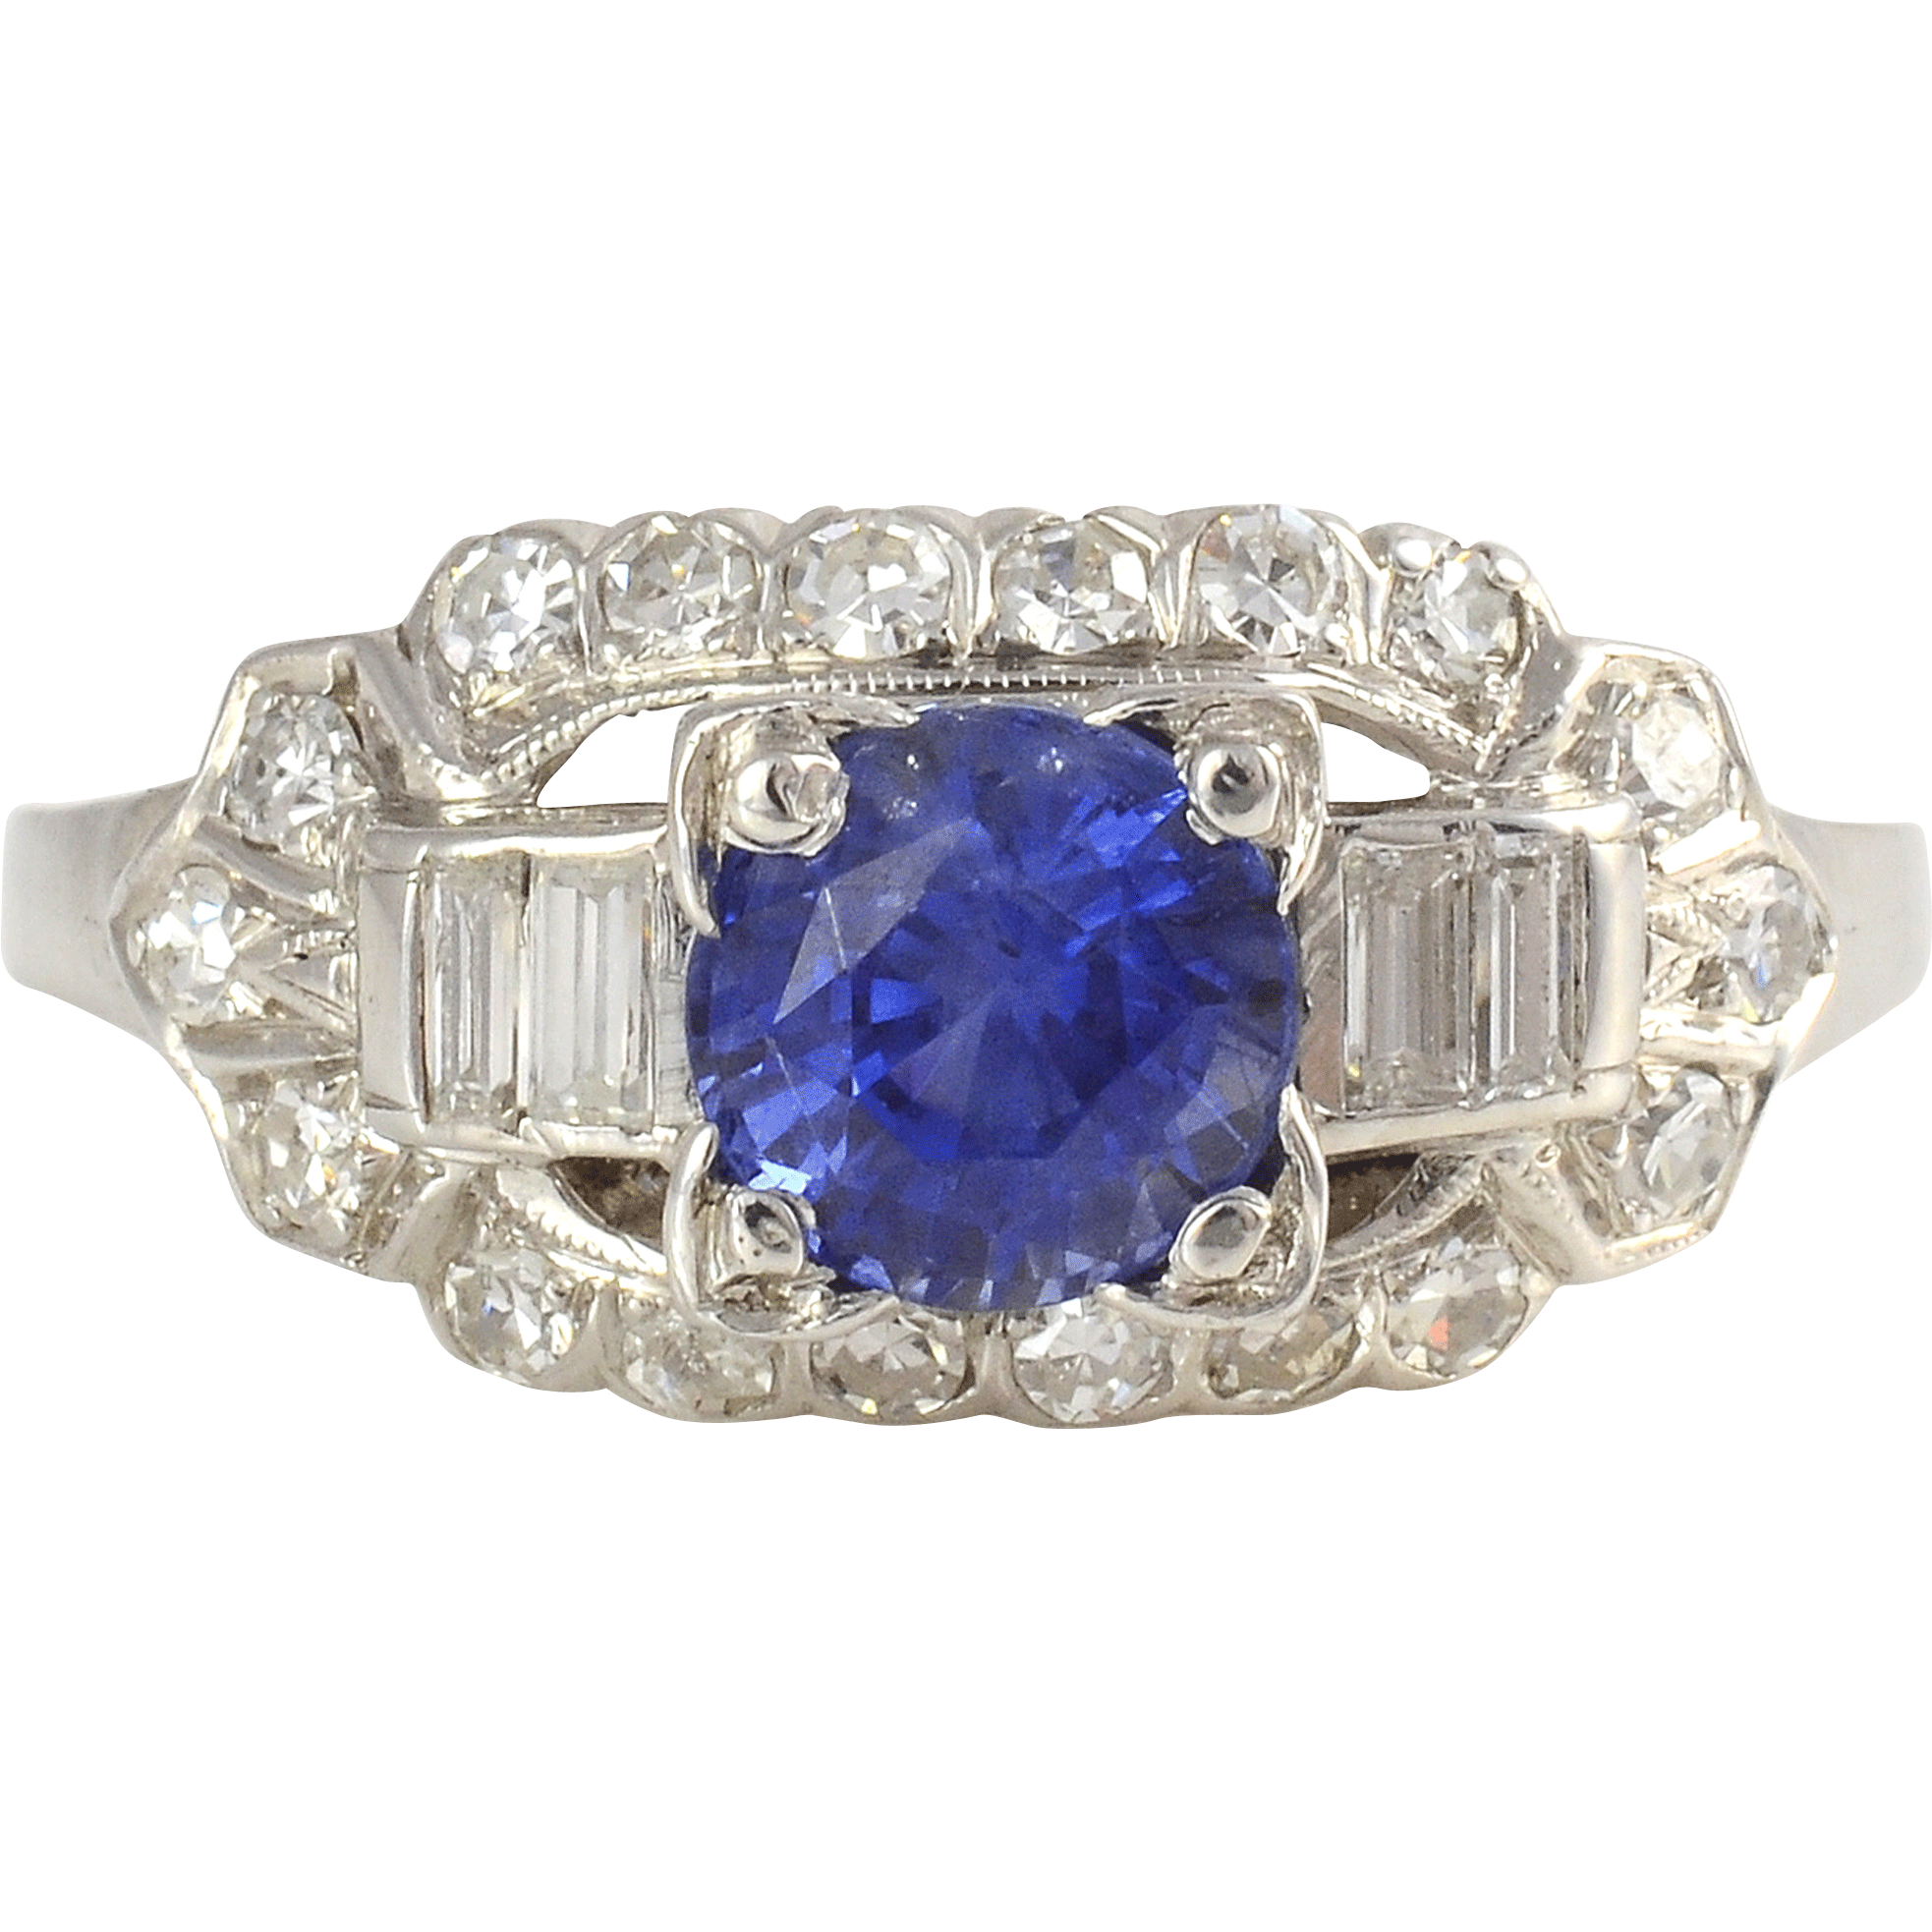 Platinum 1.52 Carat Sapphire Ring with Diamonds